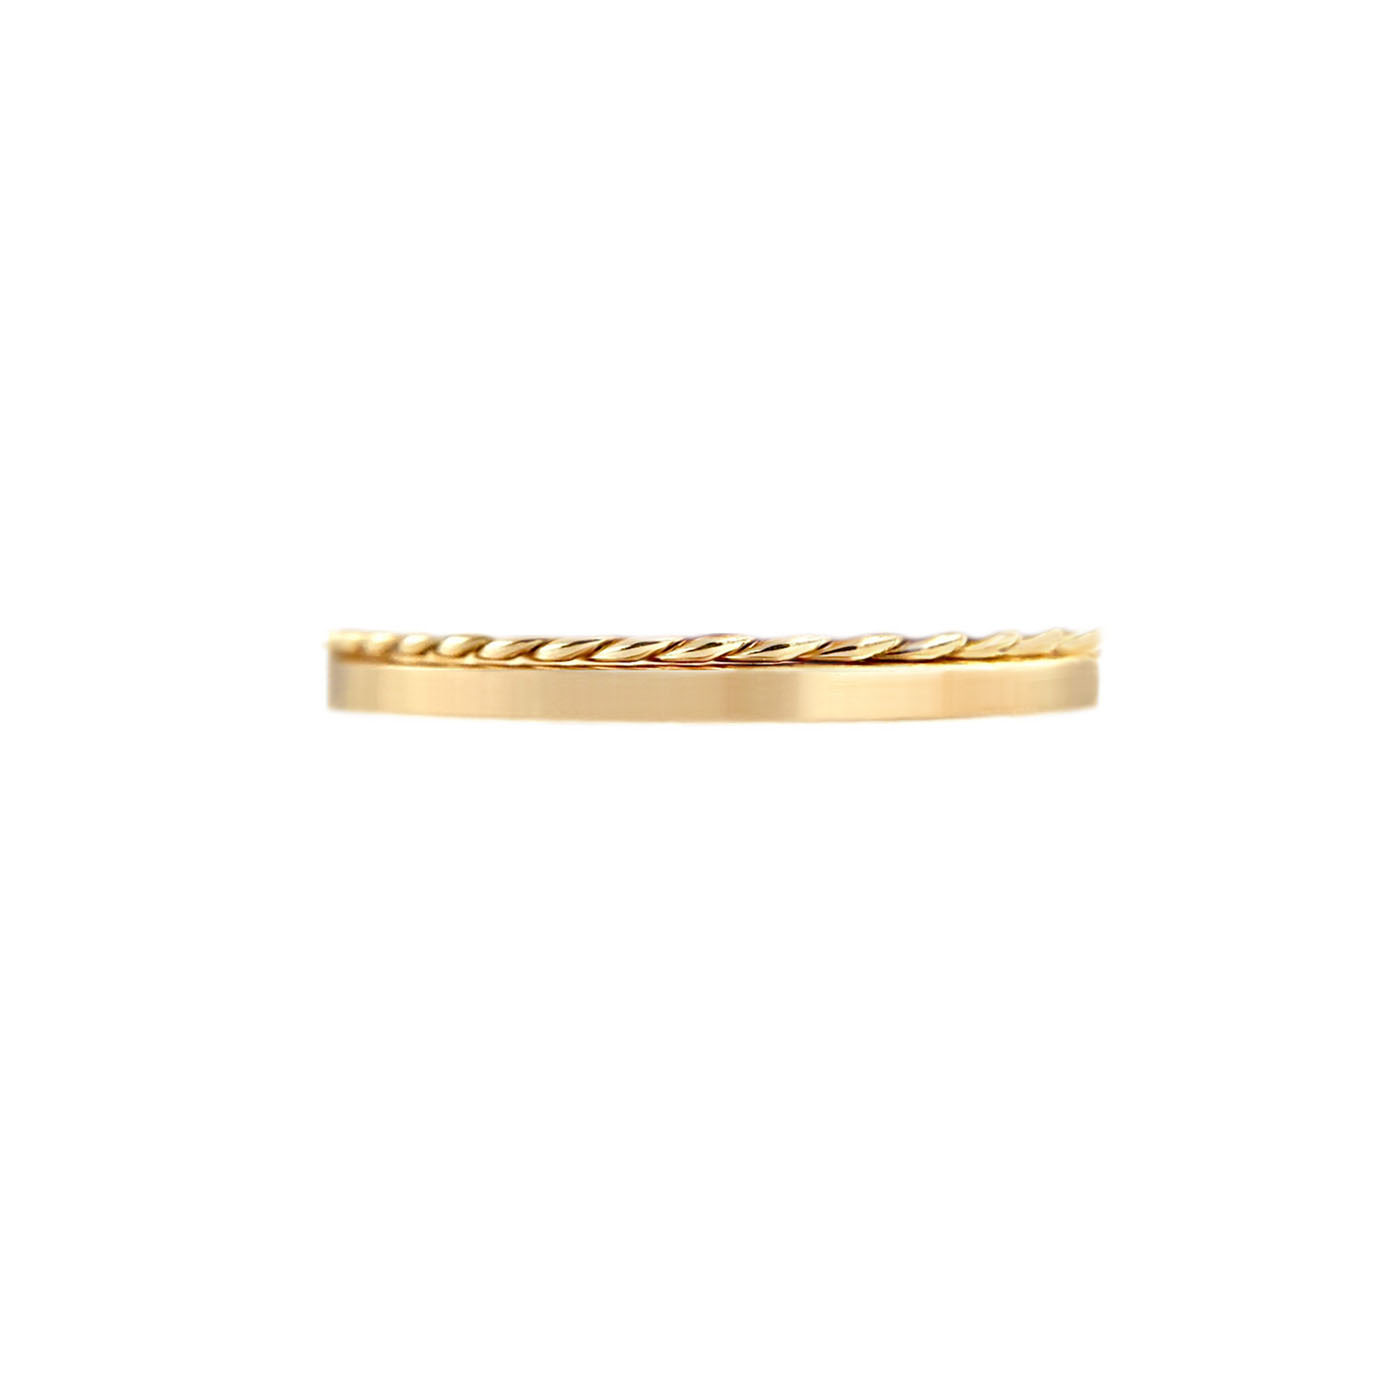 50.42-1.8mm-Slim-Twist-Satin-Stripe-Band-Two-Ring-Stacking-14k-18k-jewelyrie_9218